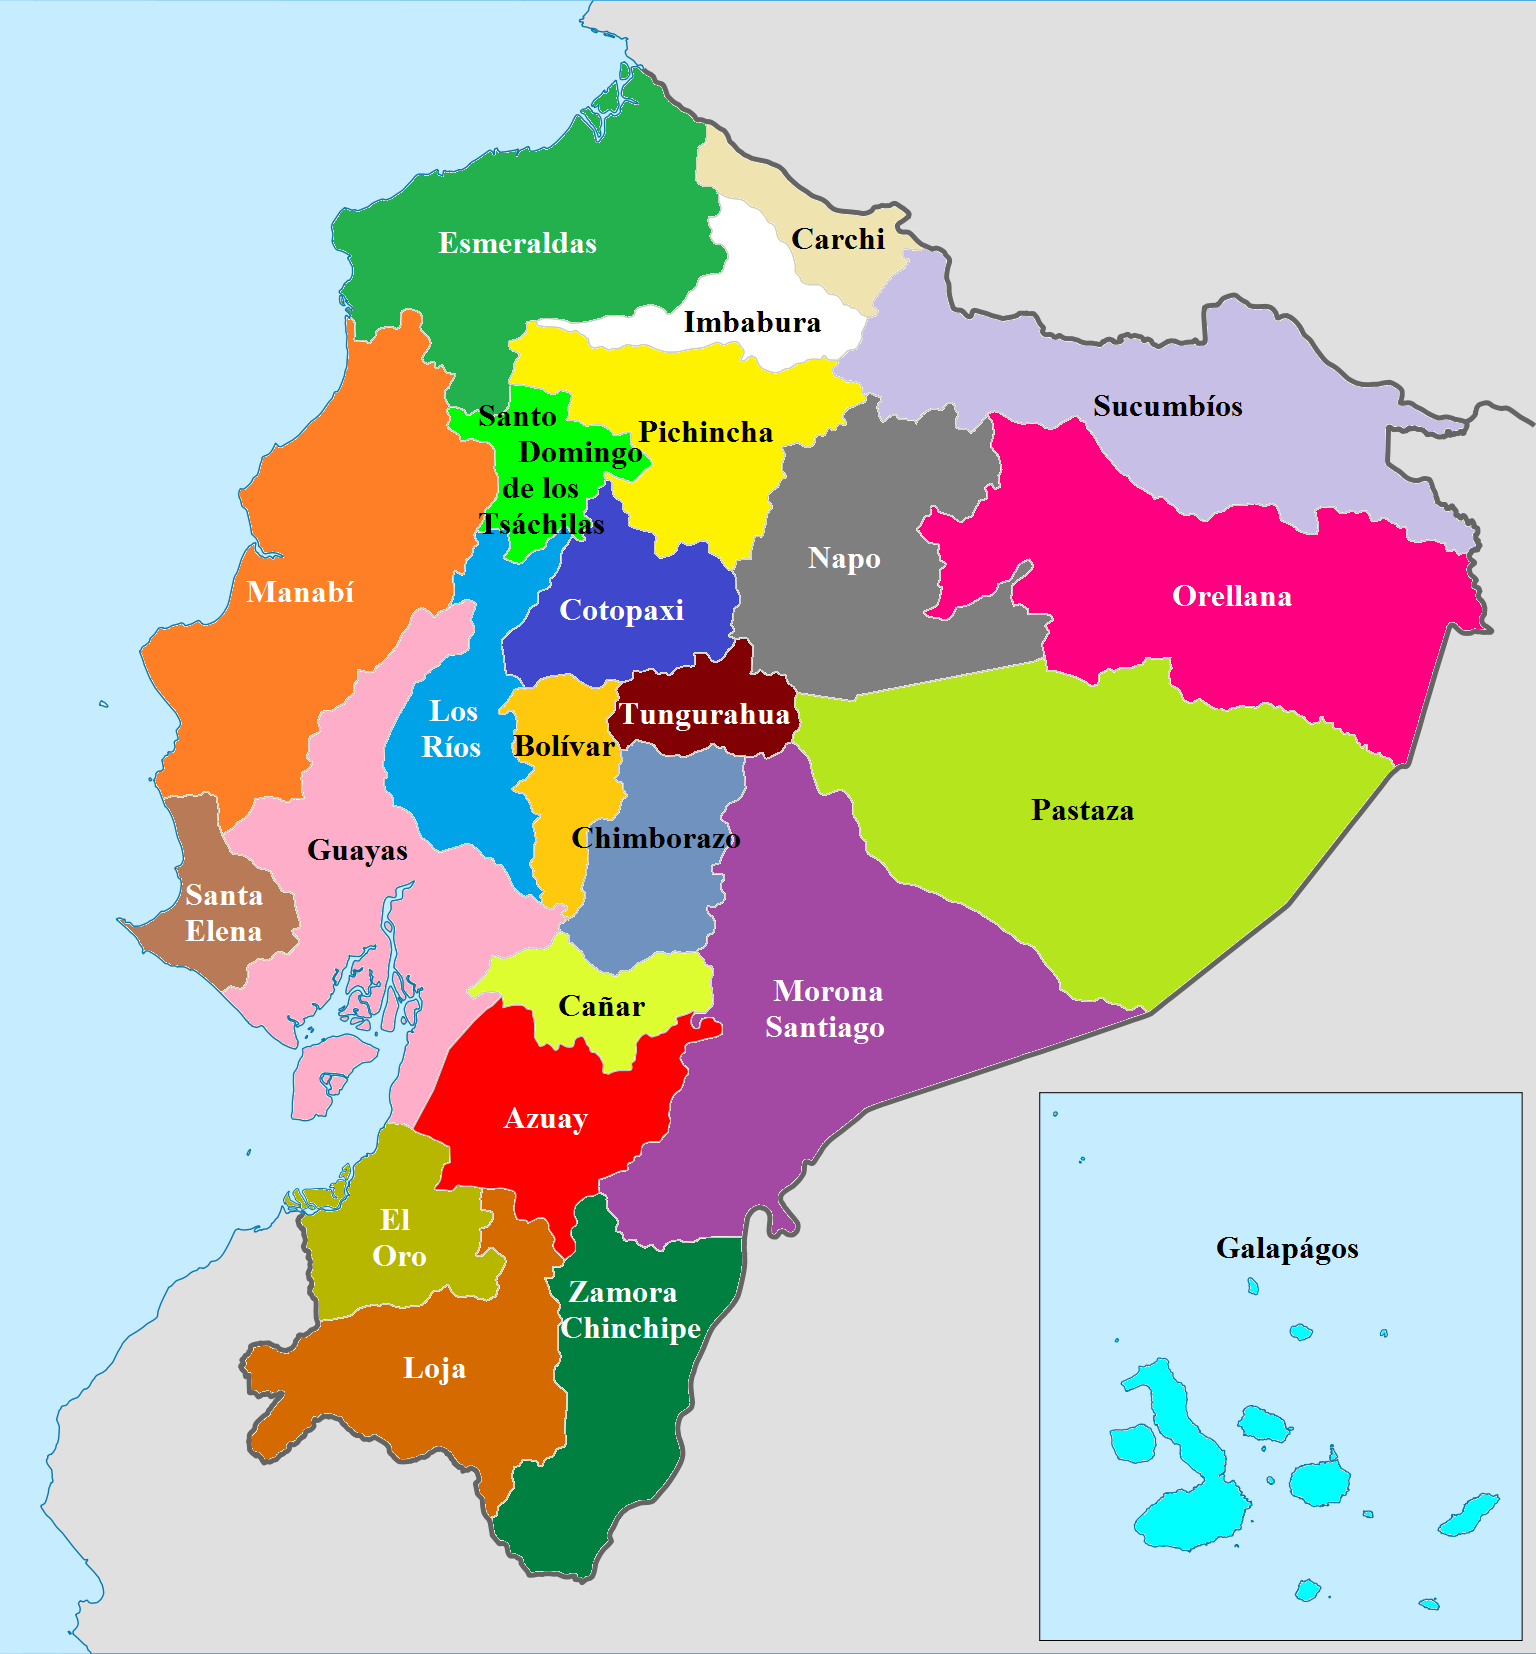 Provinces_of_ecuador.png